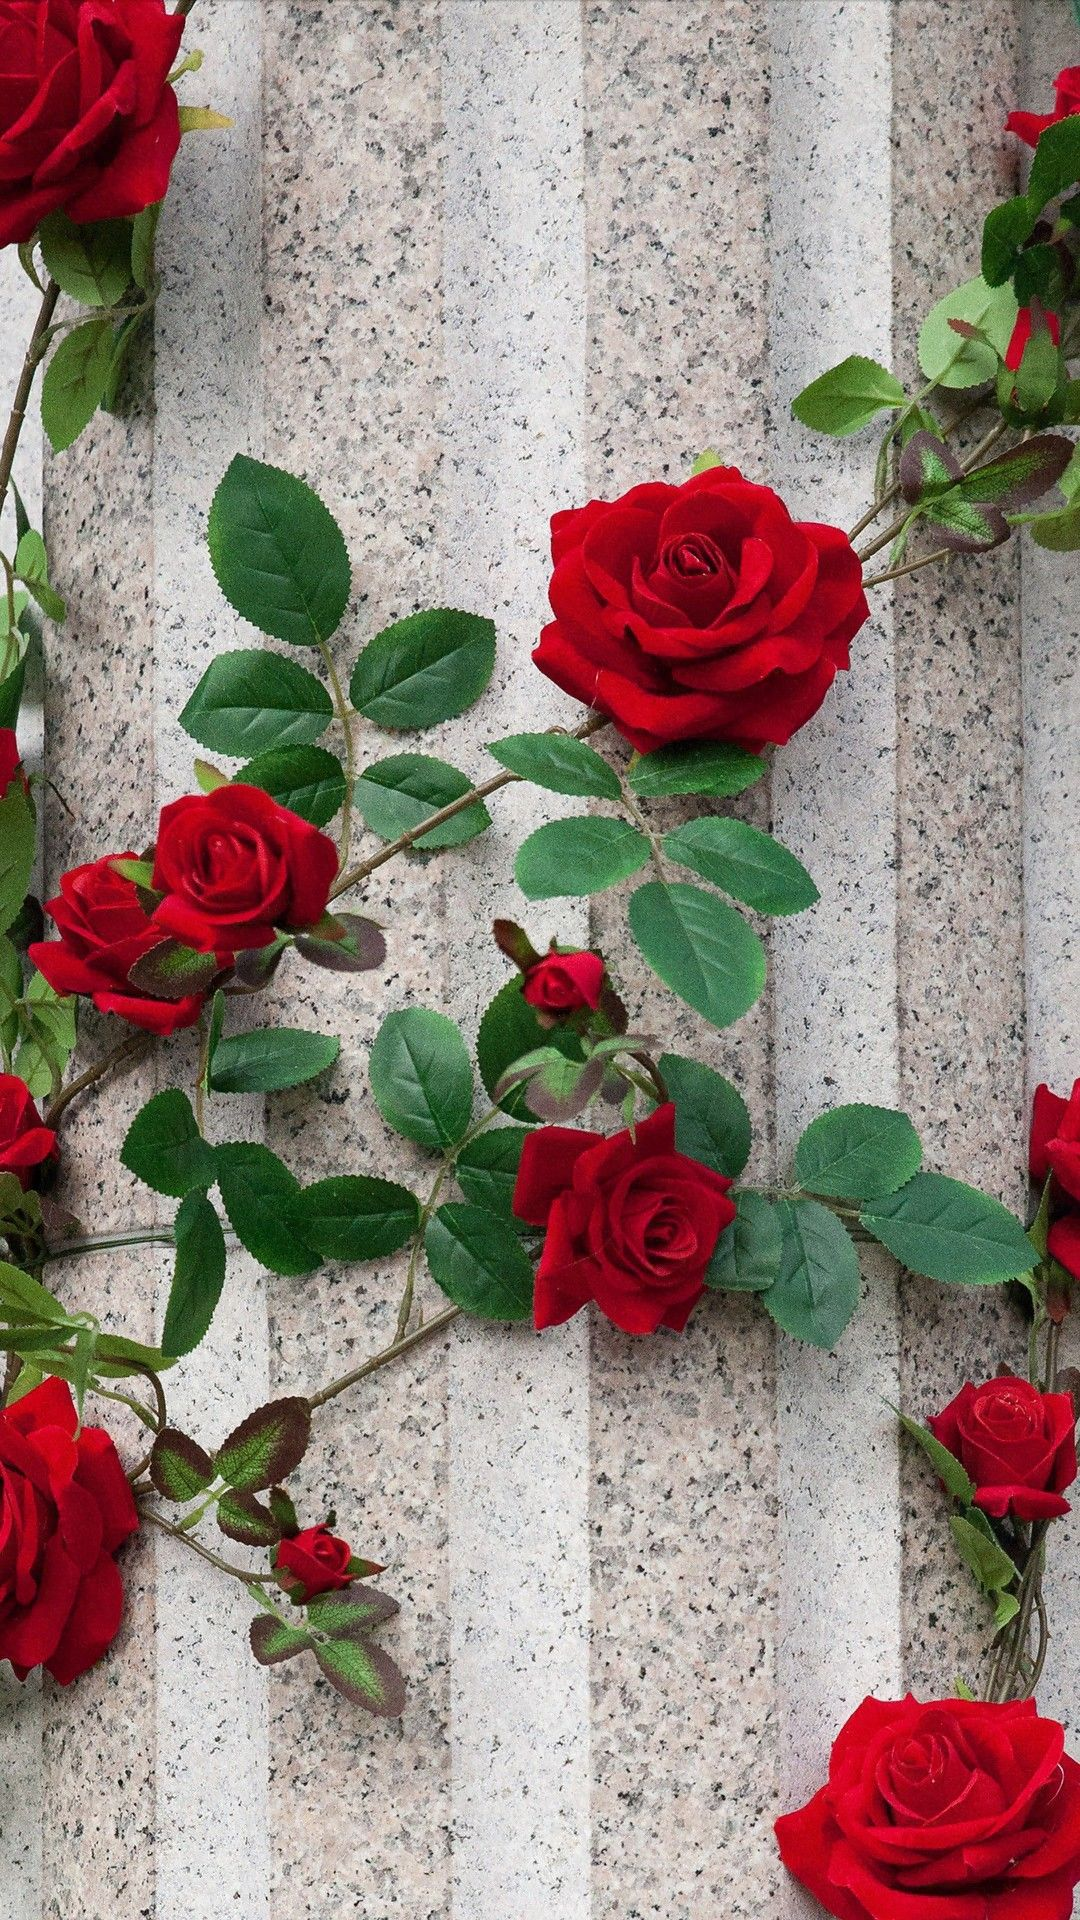 Pin By Qyyeyei On Wallpaper Flower Wallpaper Rose Wallpaper Red Roses